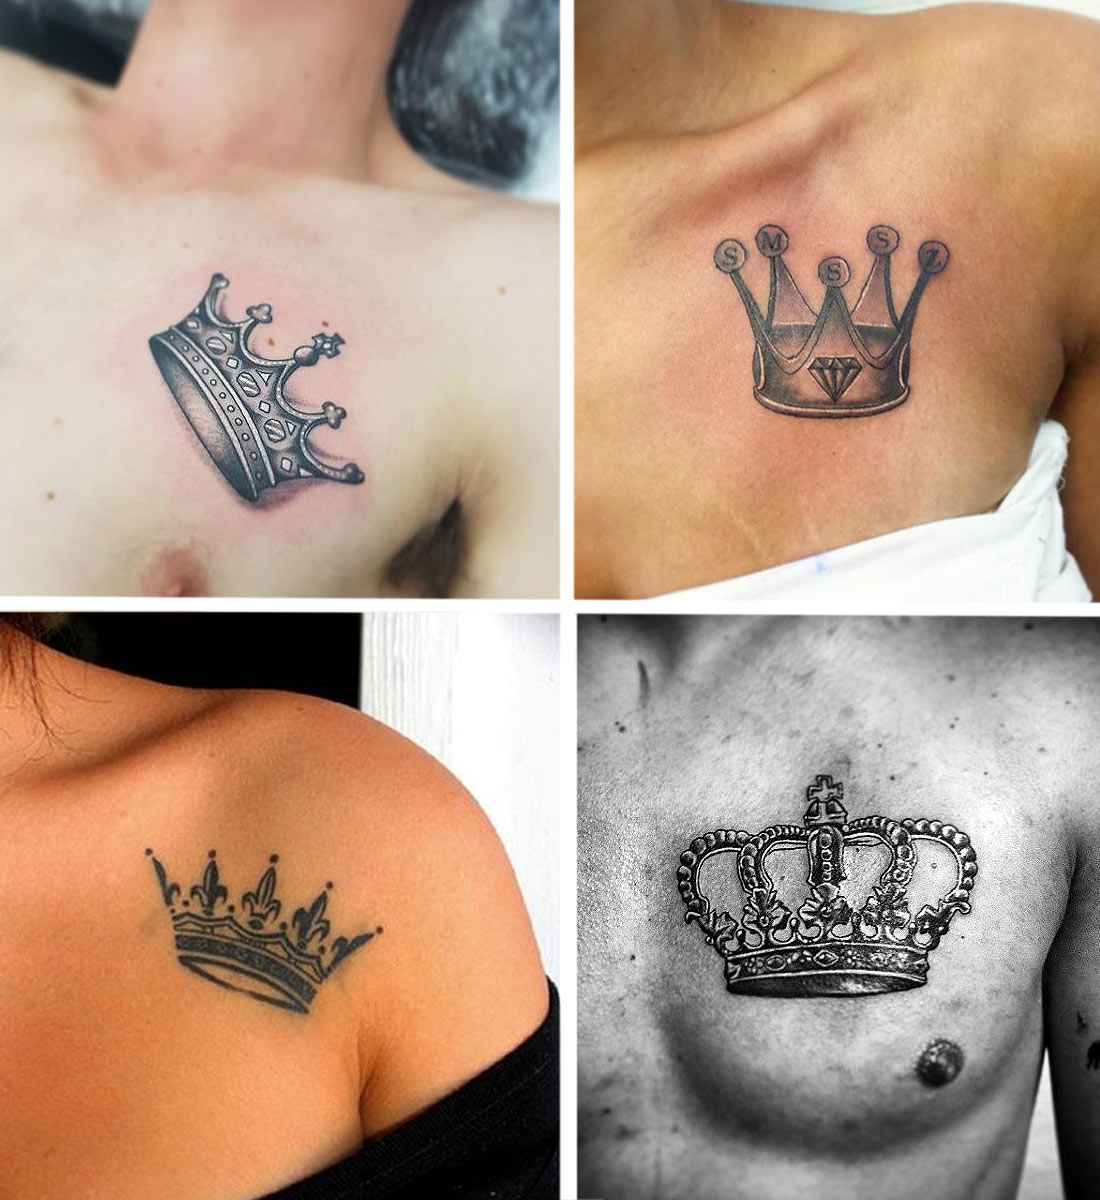 crown-tattoo-on-chest-couple-atttoos-latest-trend-internet